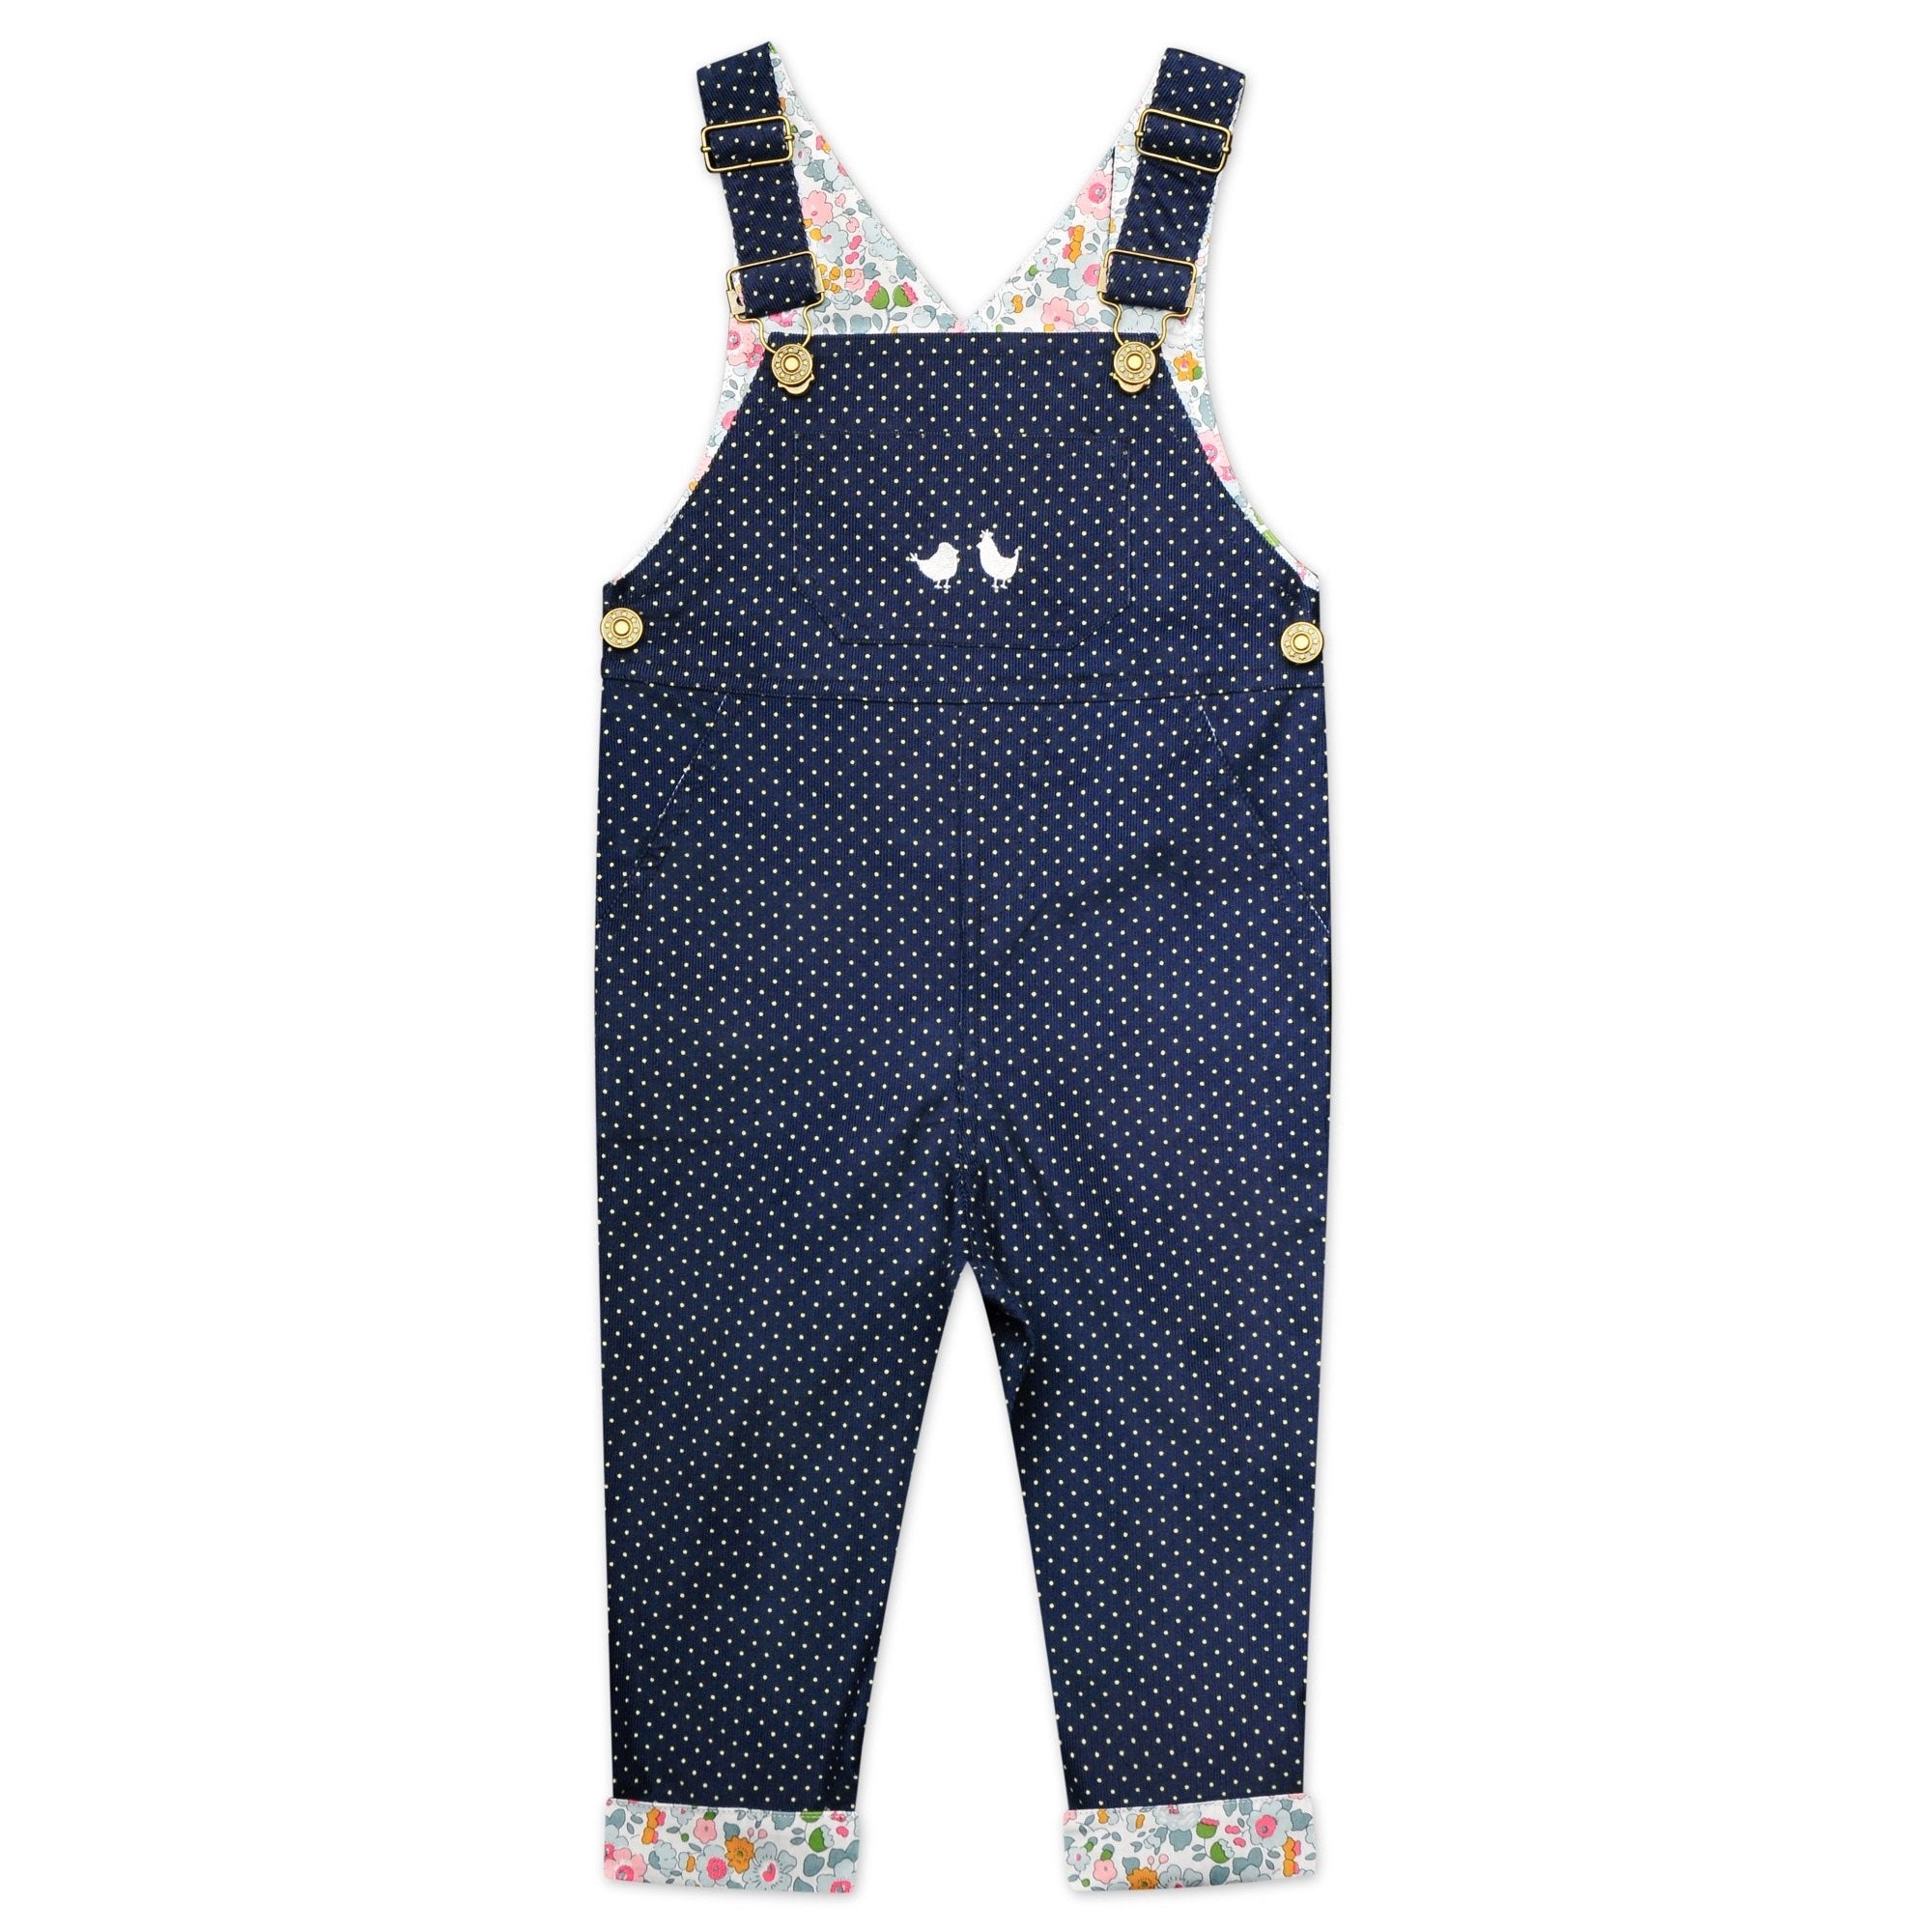 CORDUROY OVERALLS IN NAVY POLKA DOT